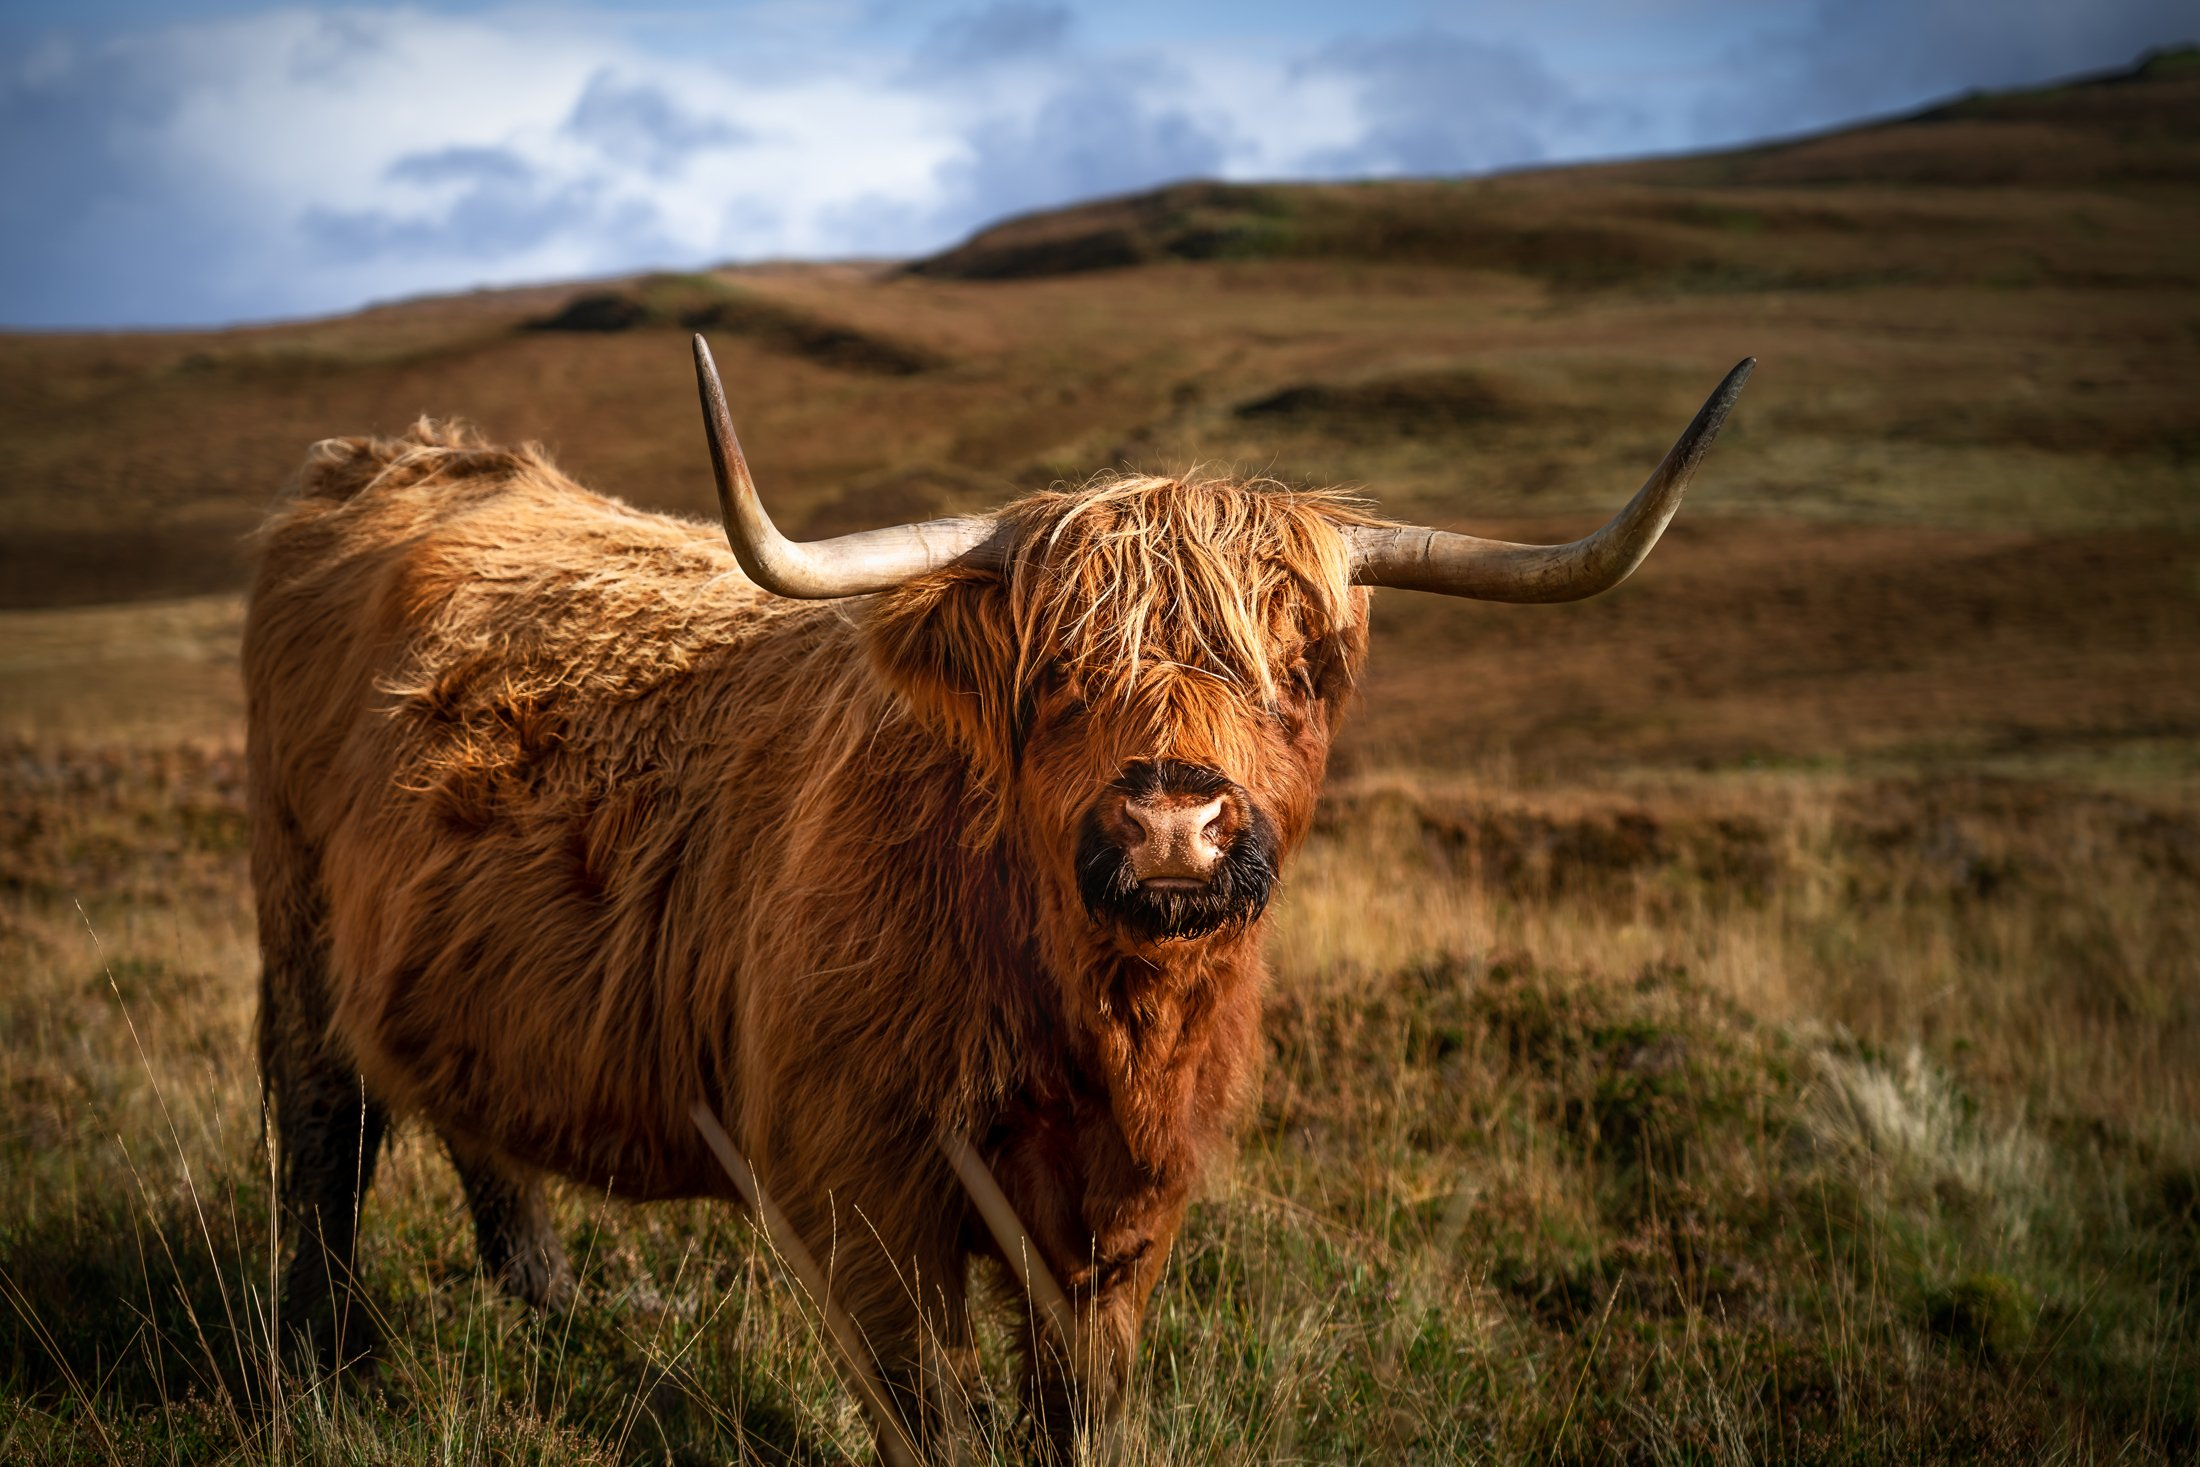 Highland cattle, distinguished by their shaggy coats and upturned horns, are a Scottish breed. (Glenn Davis/Glenndavisphotography.com)